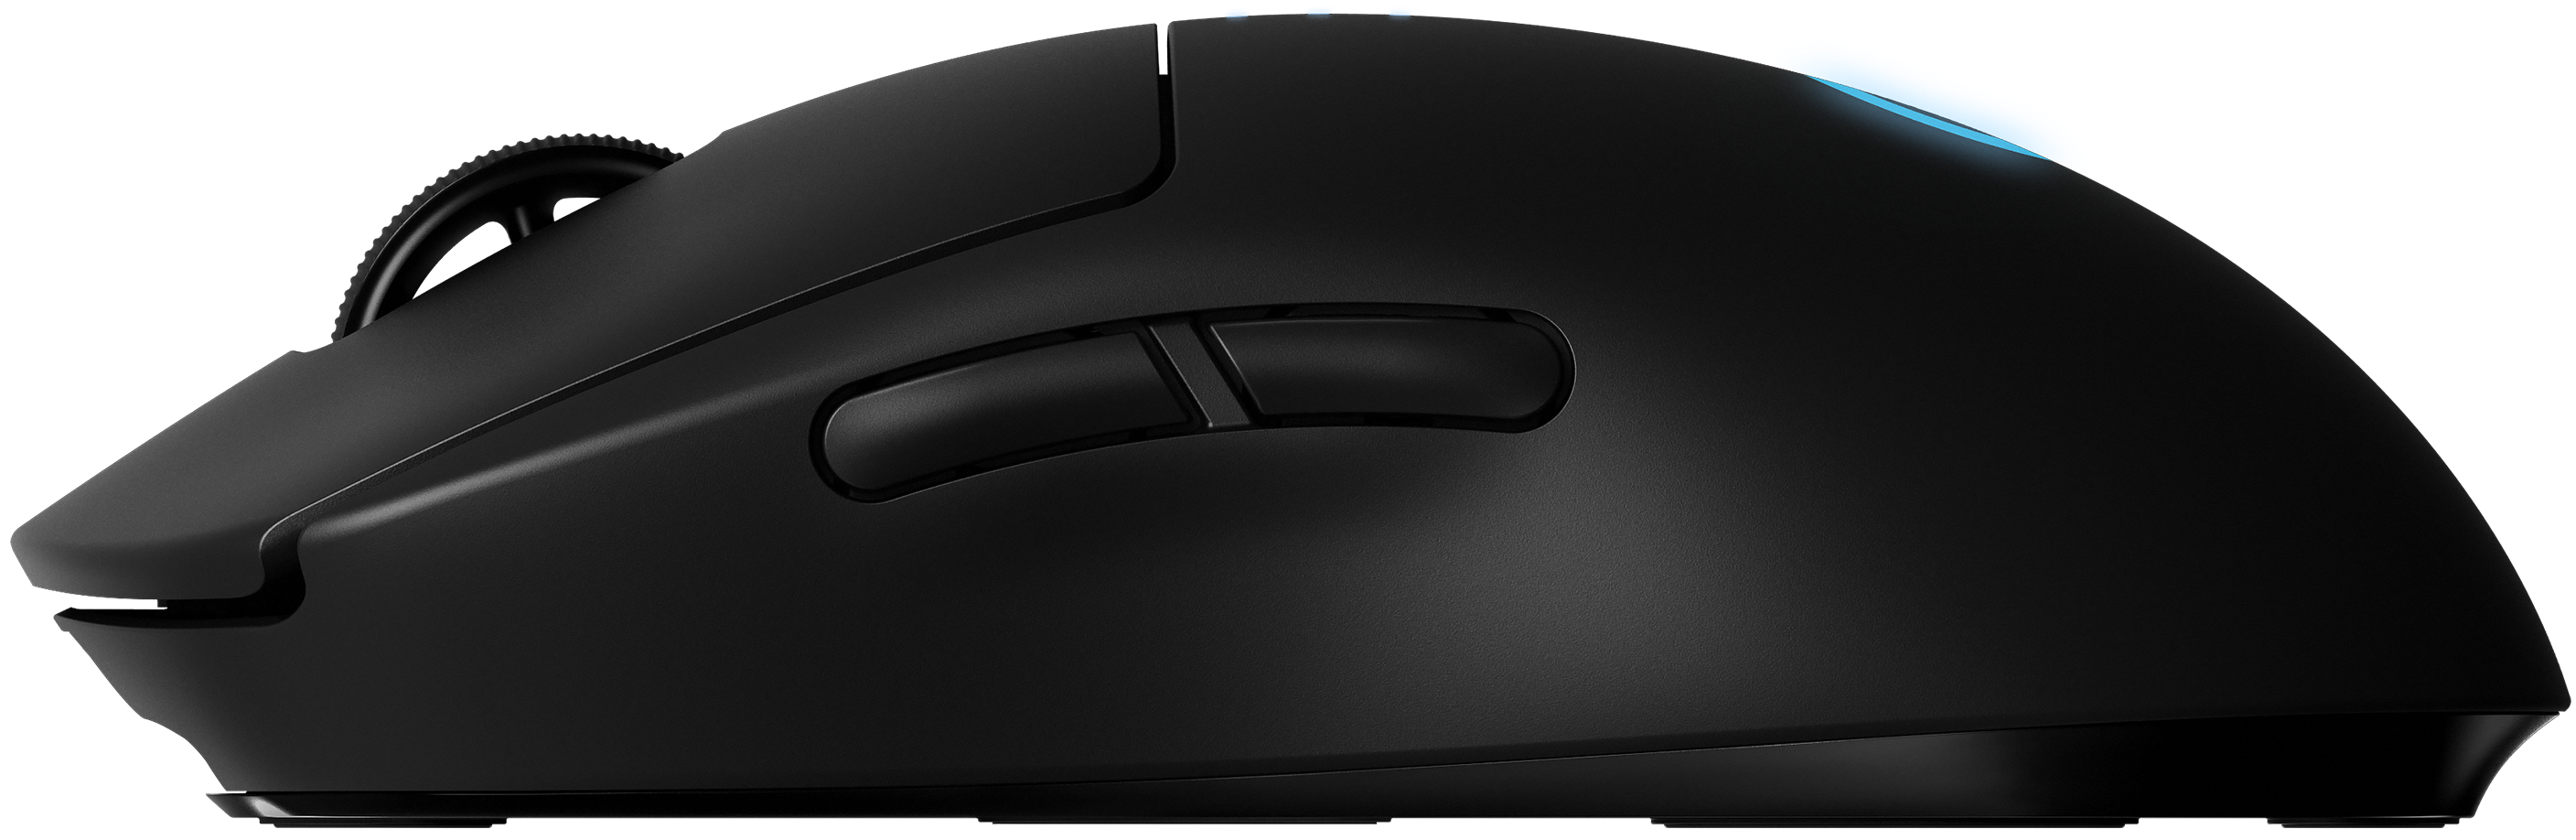 Logitech G PRO Wireless Gaming Mouse - 3